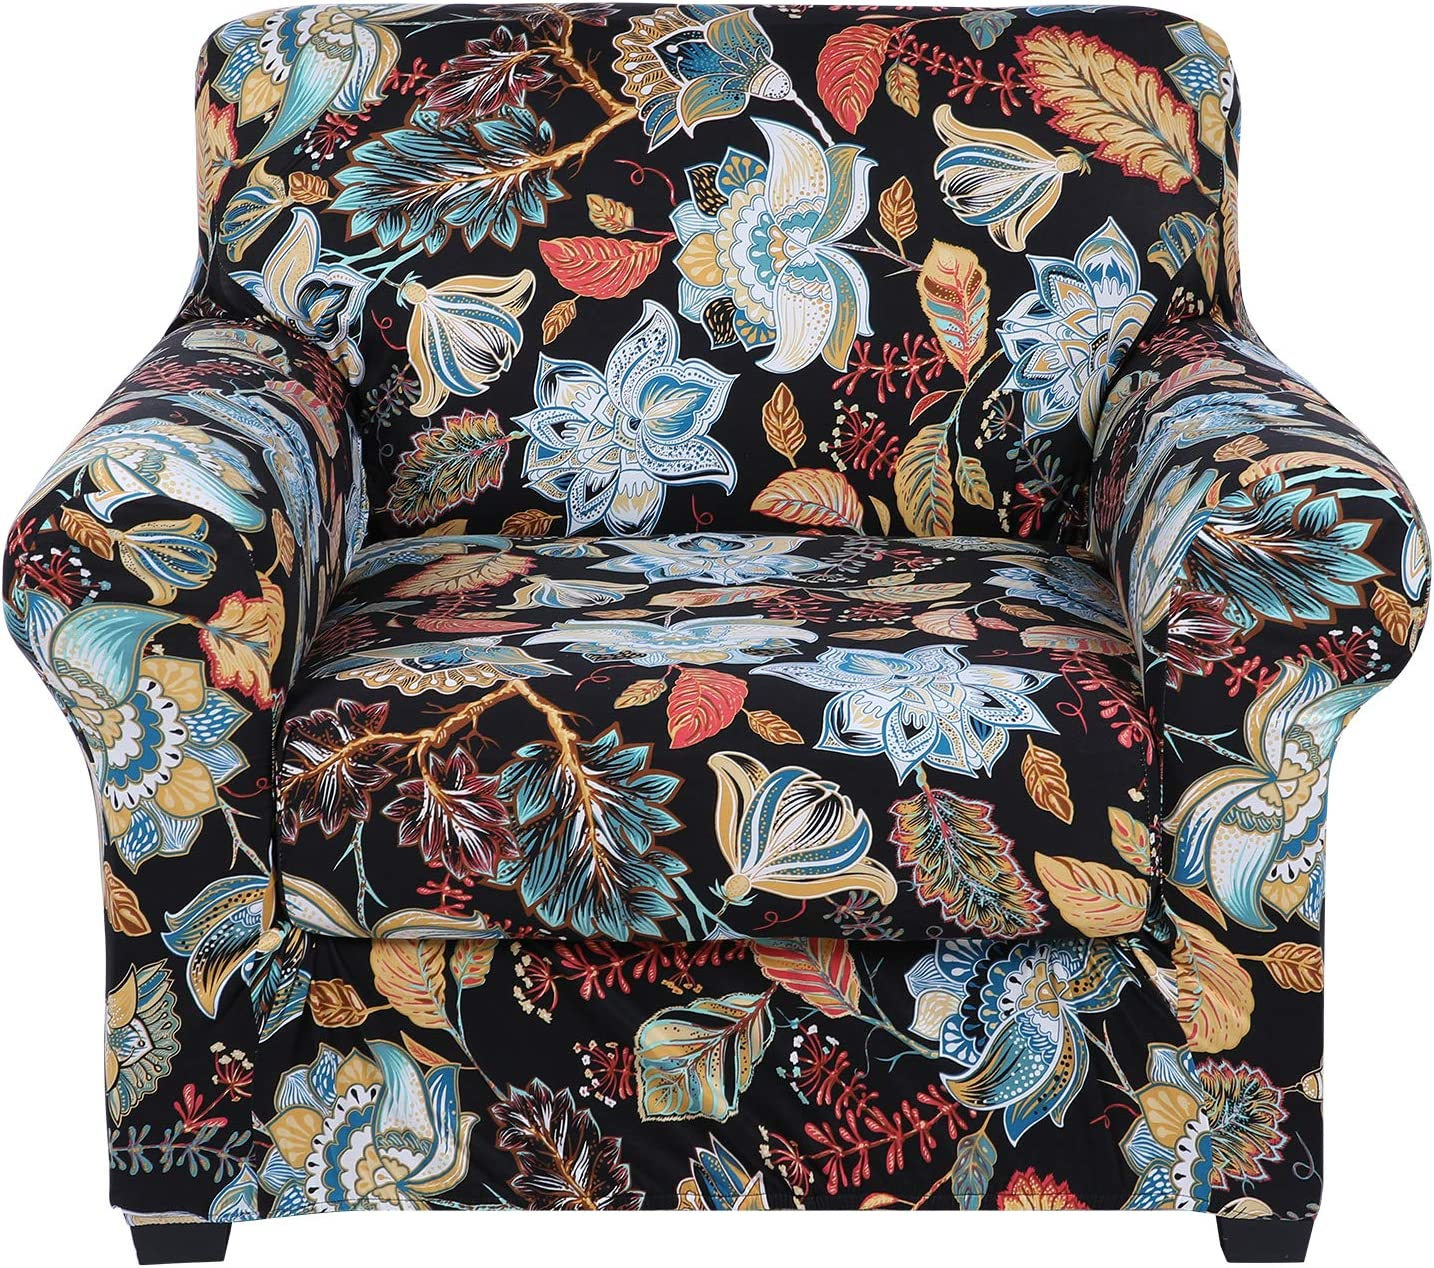 hyha Printed Couch Chair Cover - Floral Pattern Sofa Cover with Separate Cushion Cover, 2 Piece Stretch Armchair Slipcover Washable Furniture Protector (Armchair, Floral)